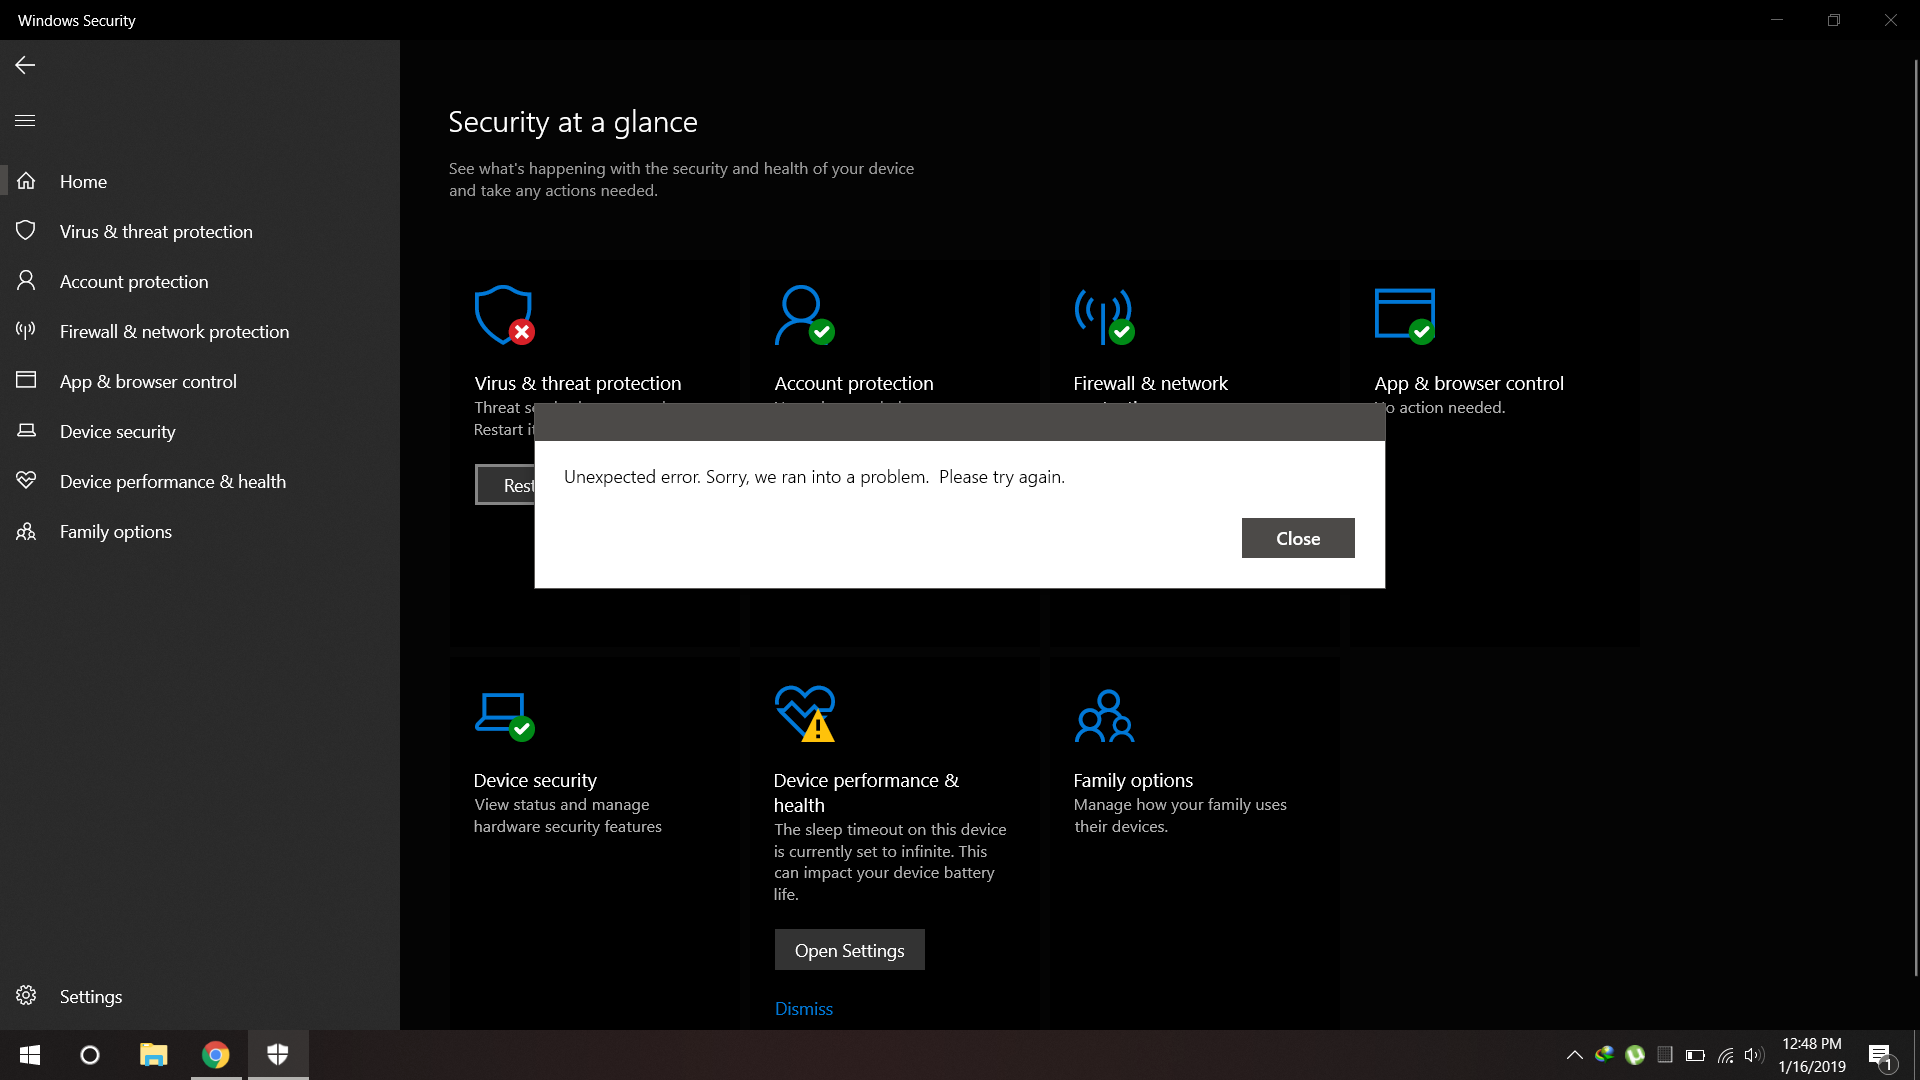 Windows Defender - Virus and Threat Protection - Threat service has stopped 4fffc8ce-2a2d-4355-935d-b173d5412077?upload=true.png